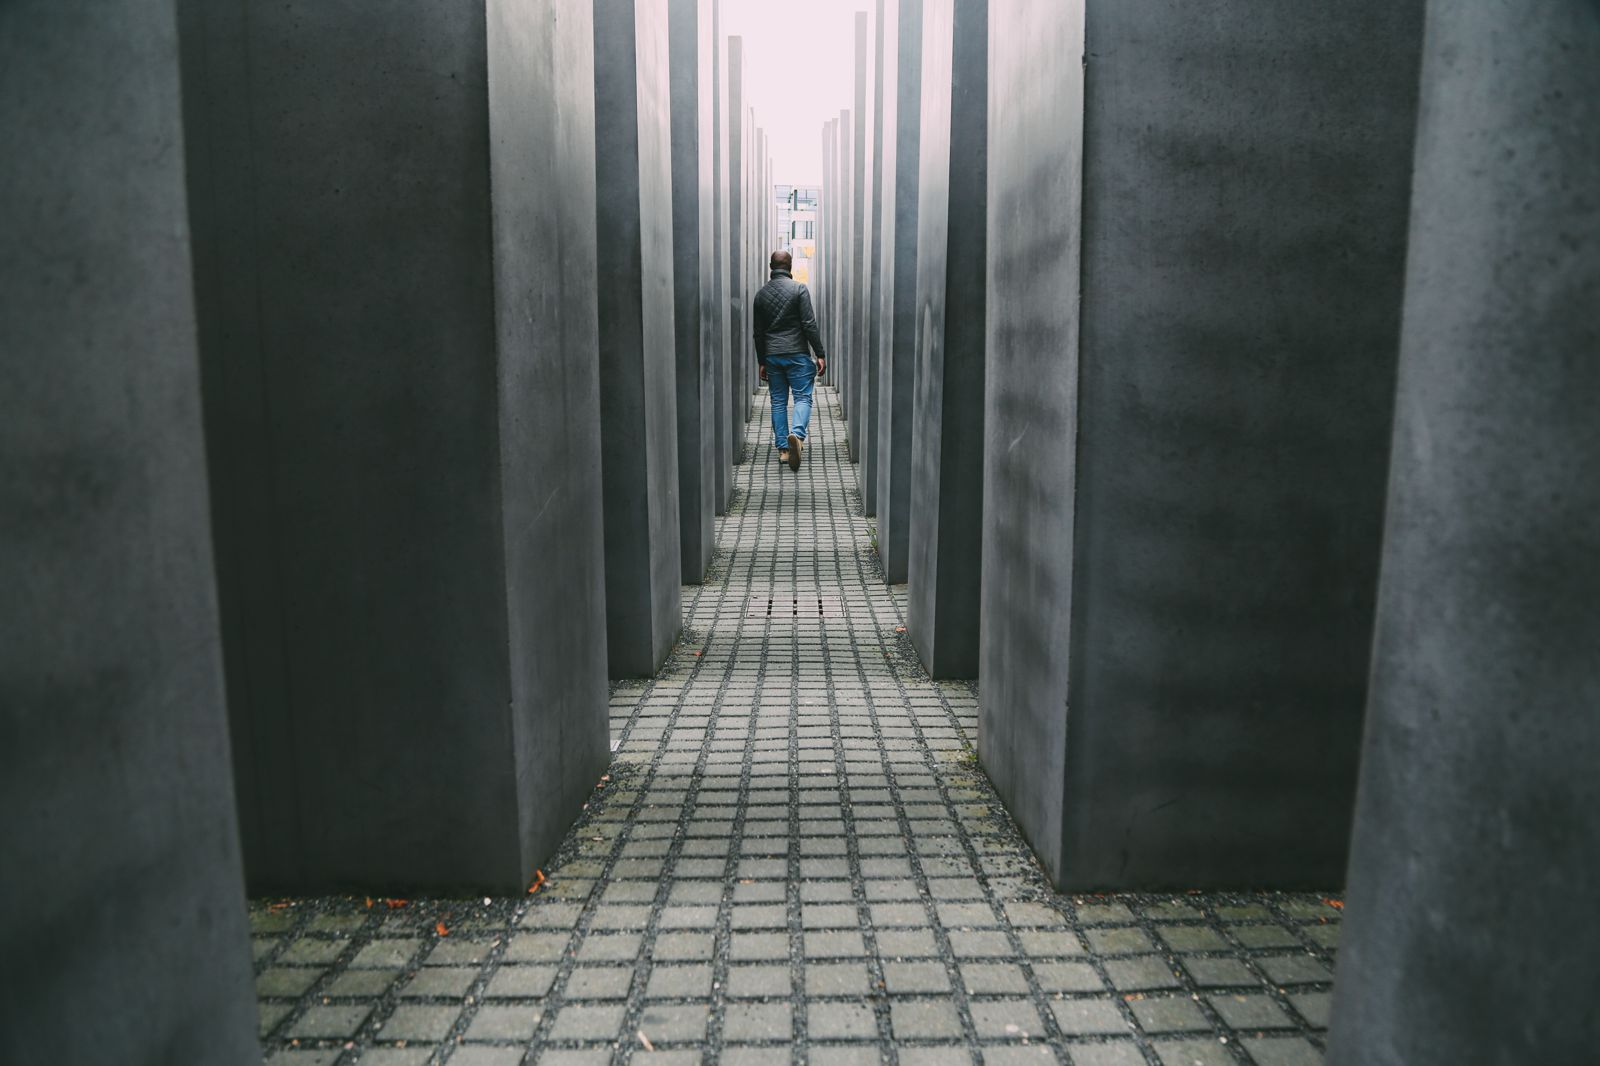 A Memoir To The Fallen - The Holocaust Memorial Also known as the Memorial to the Murdered Jews of Europe (6)